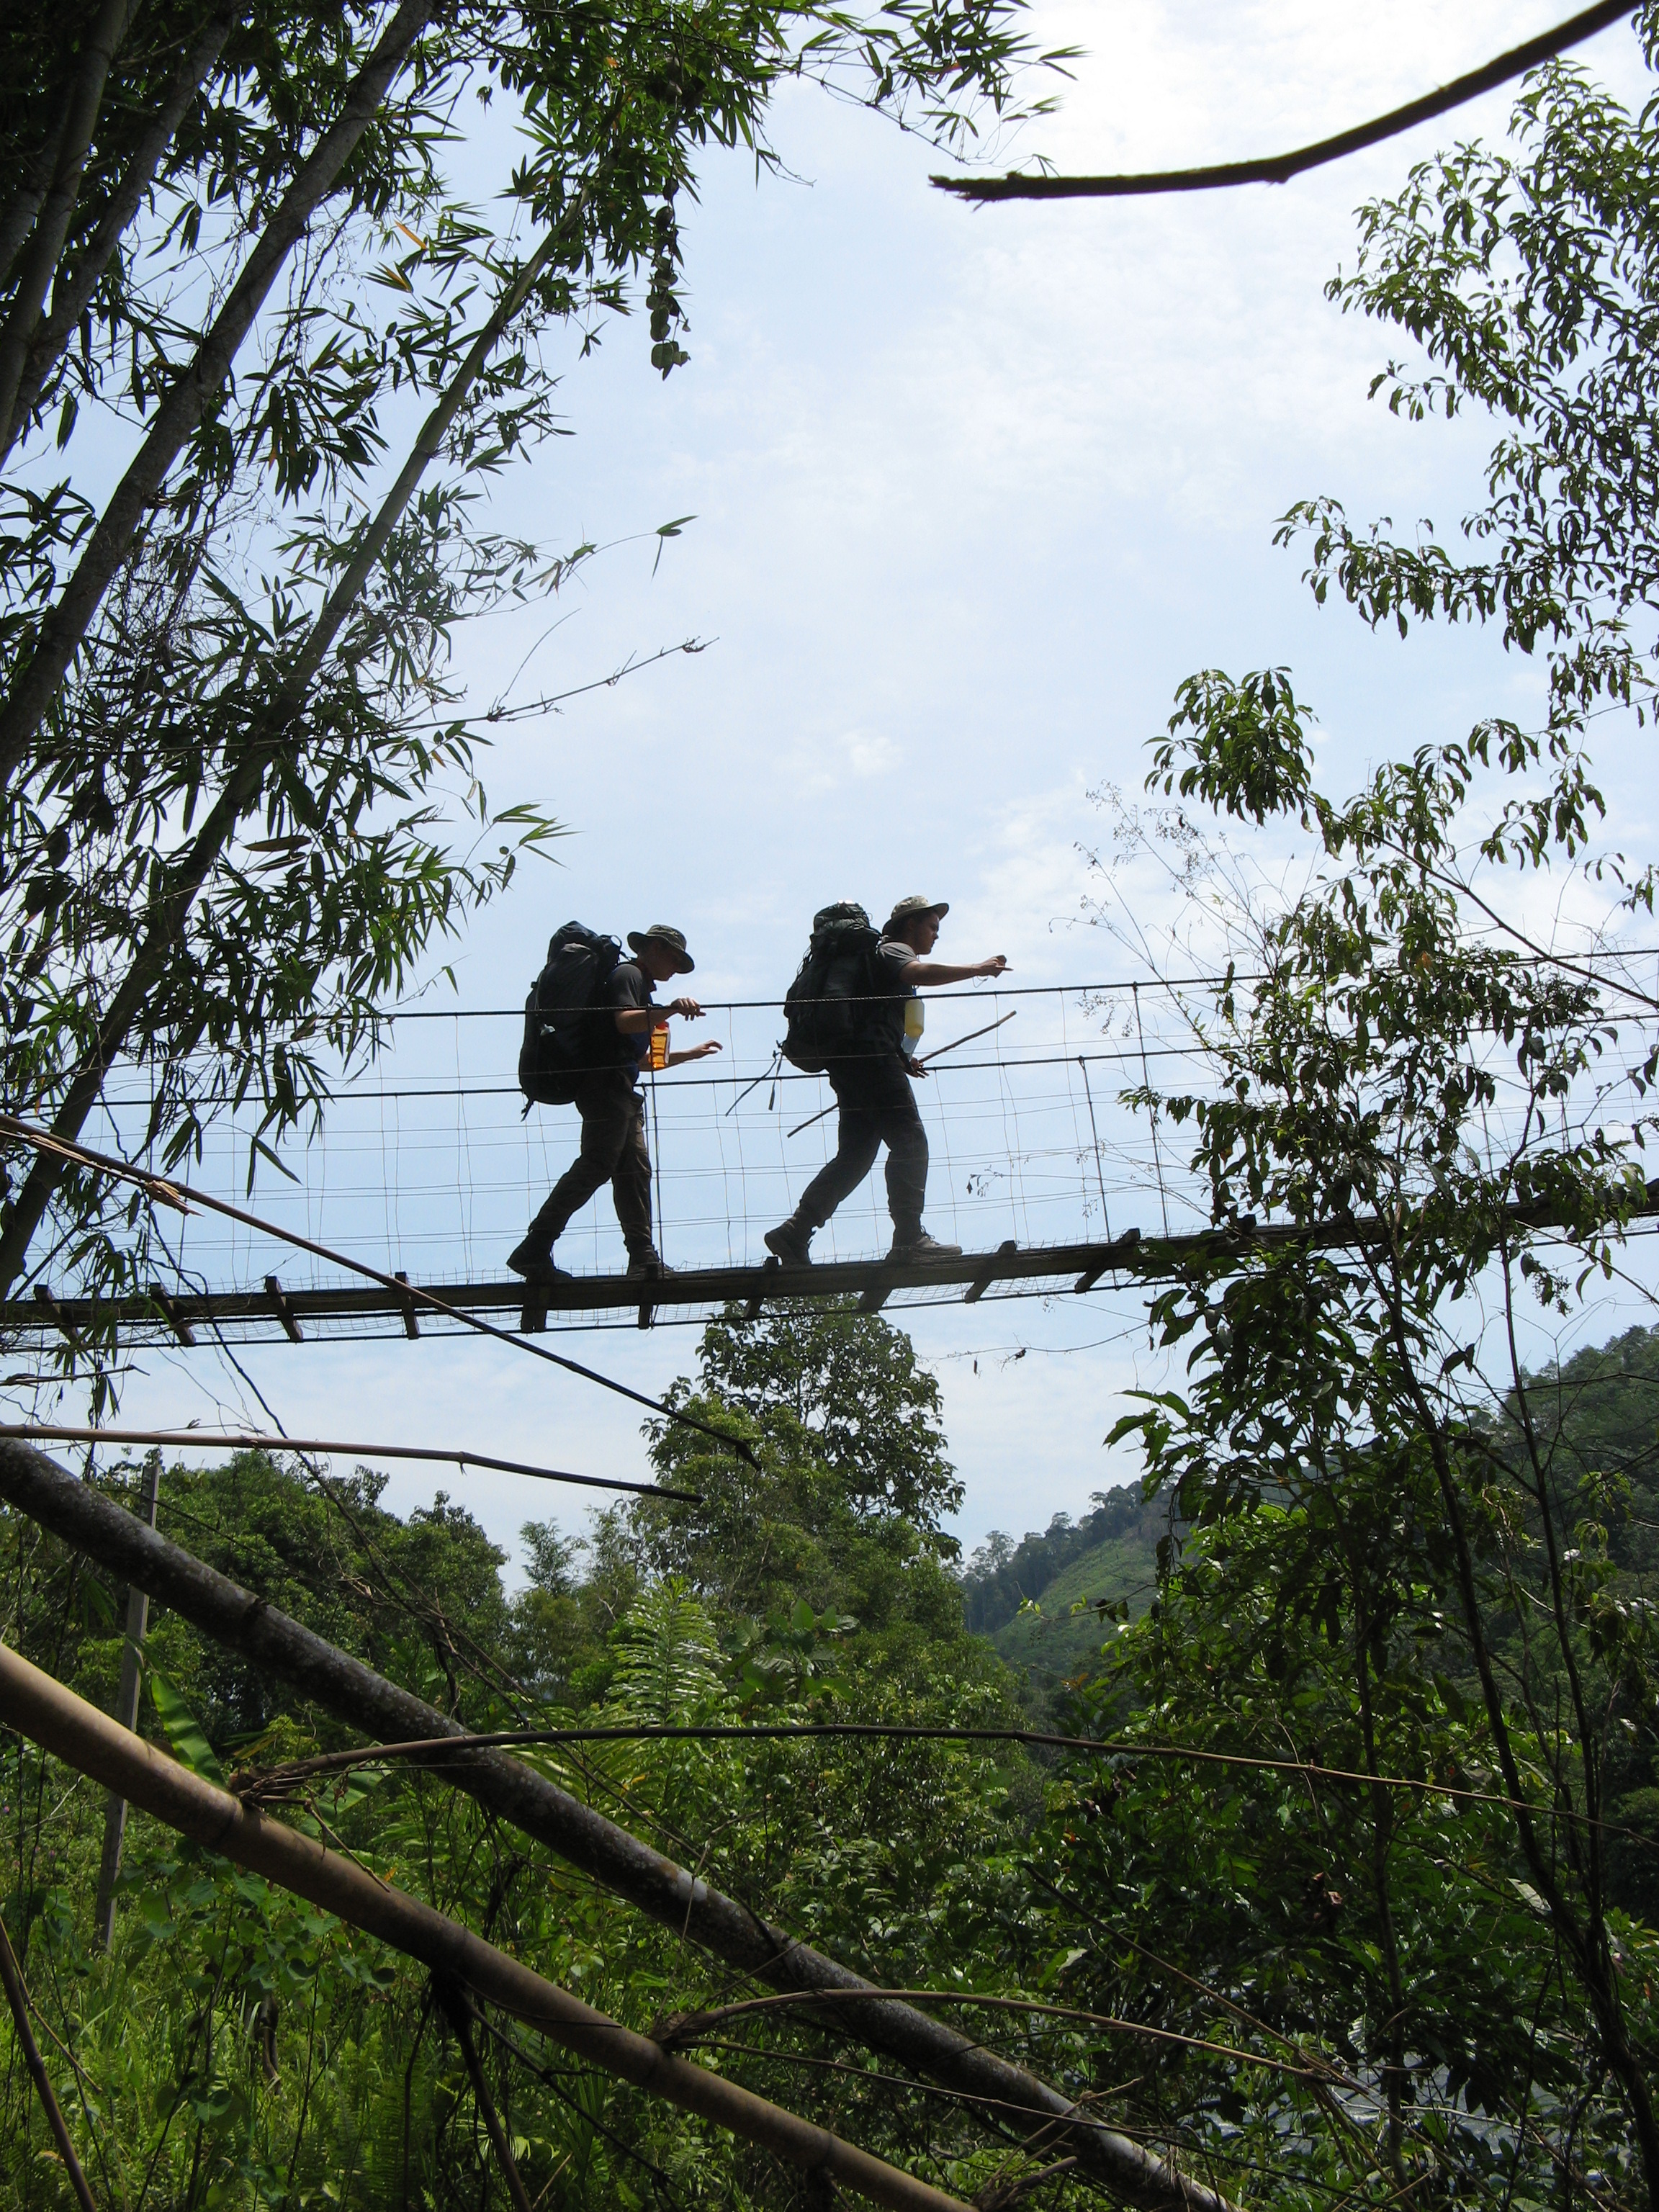 Bike Borneo rope bridge